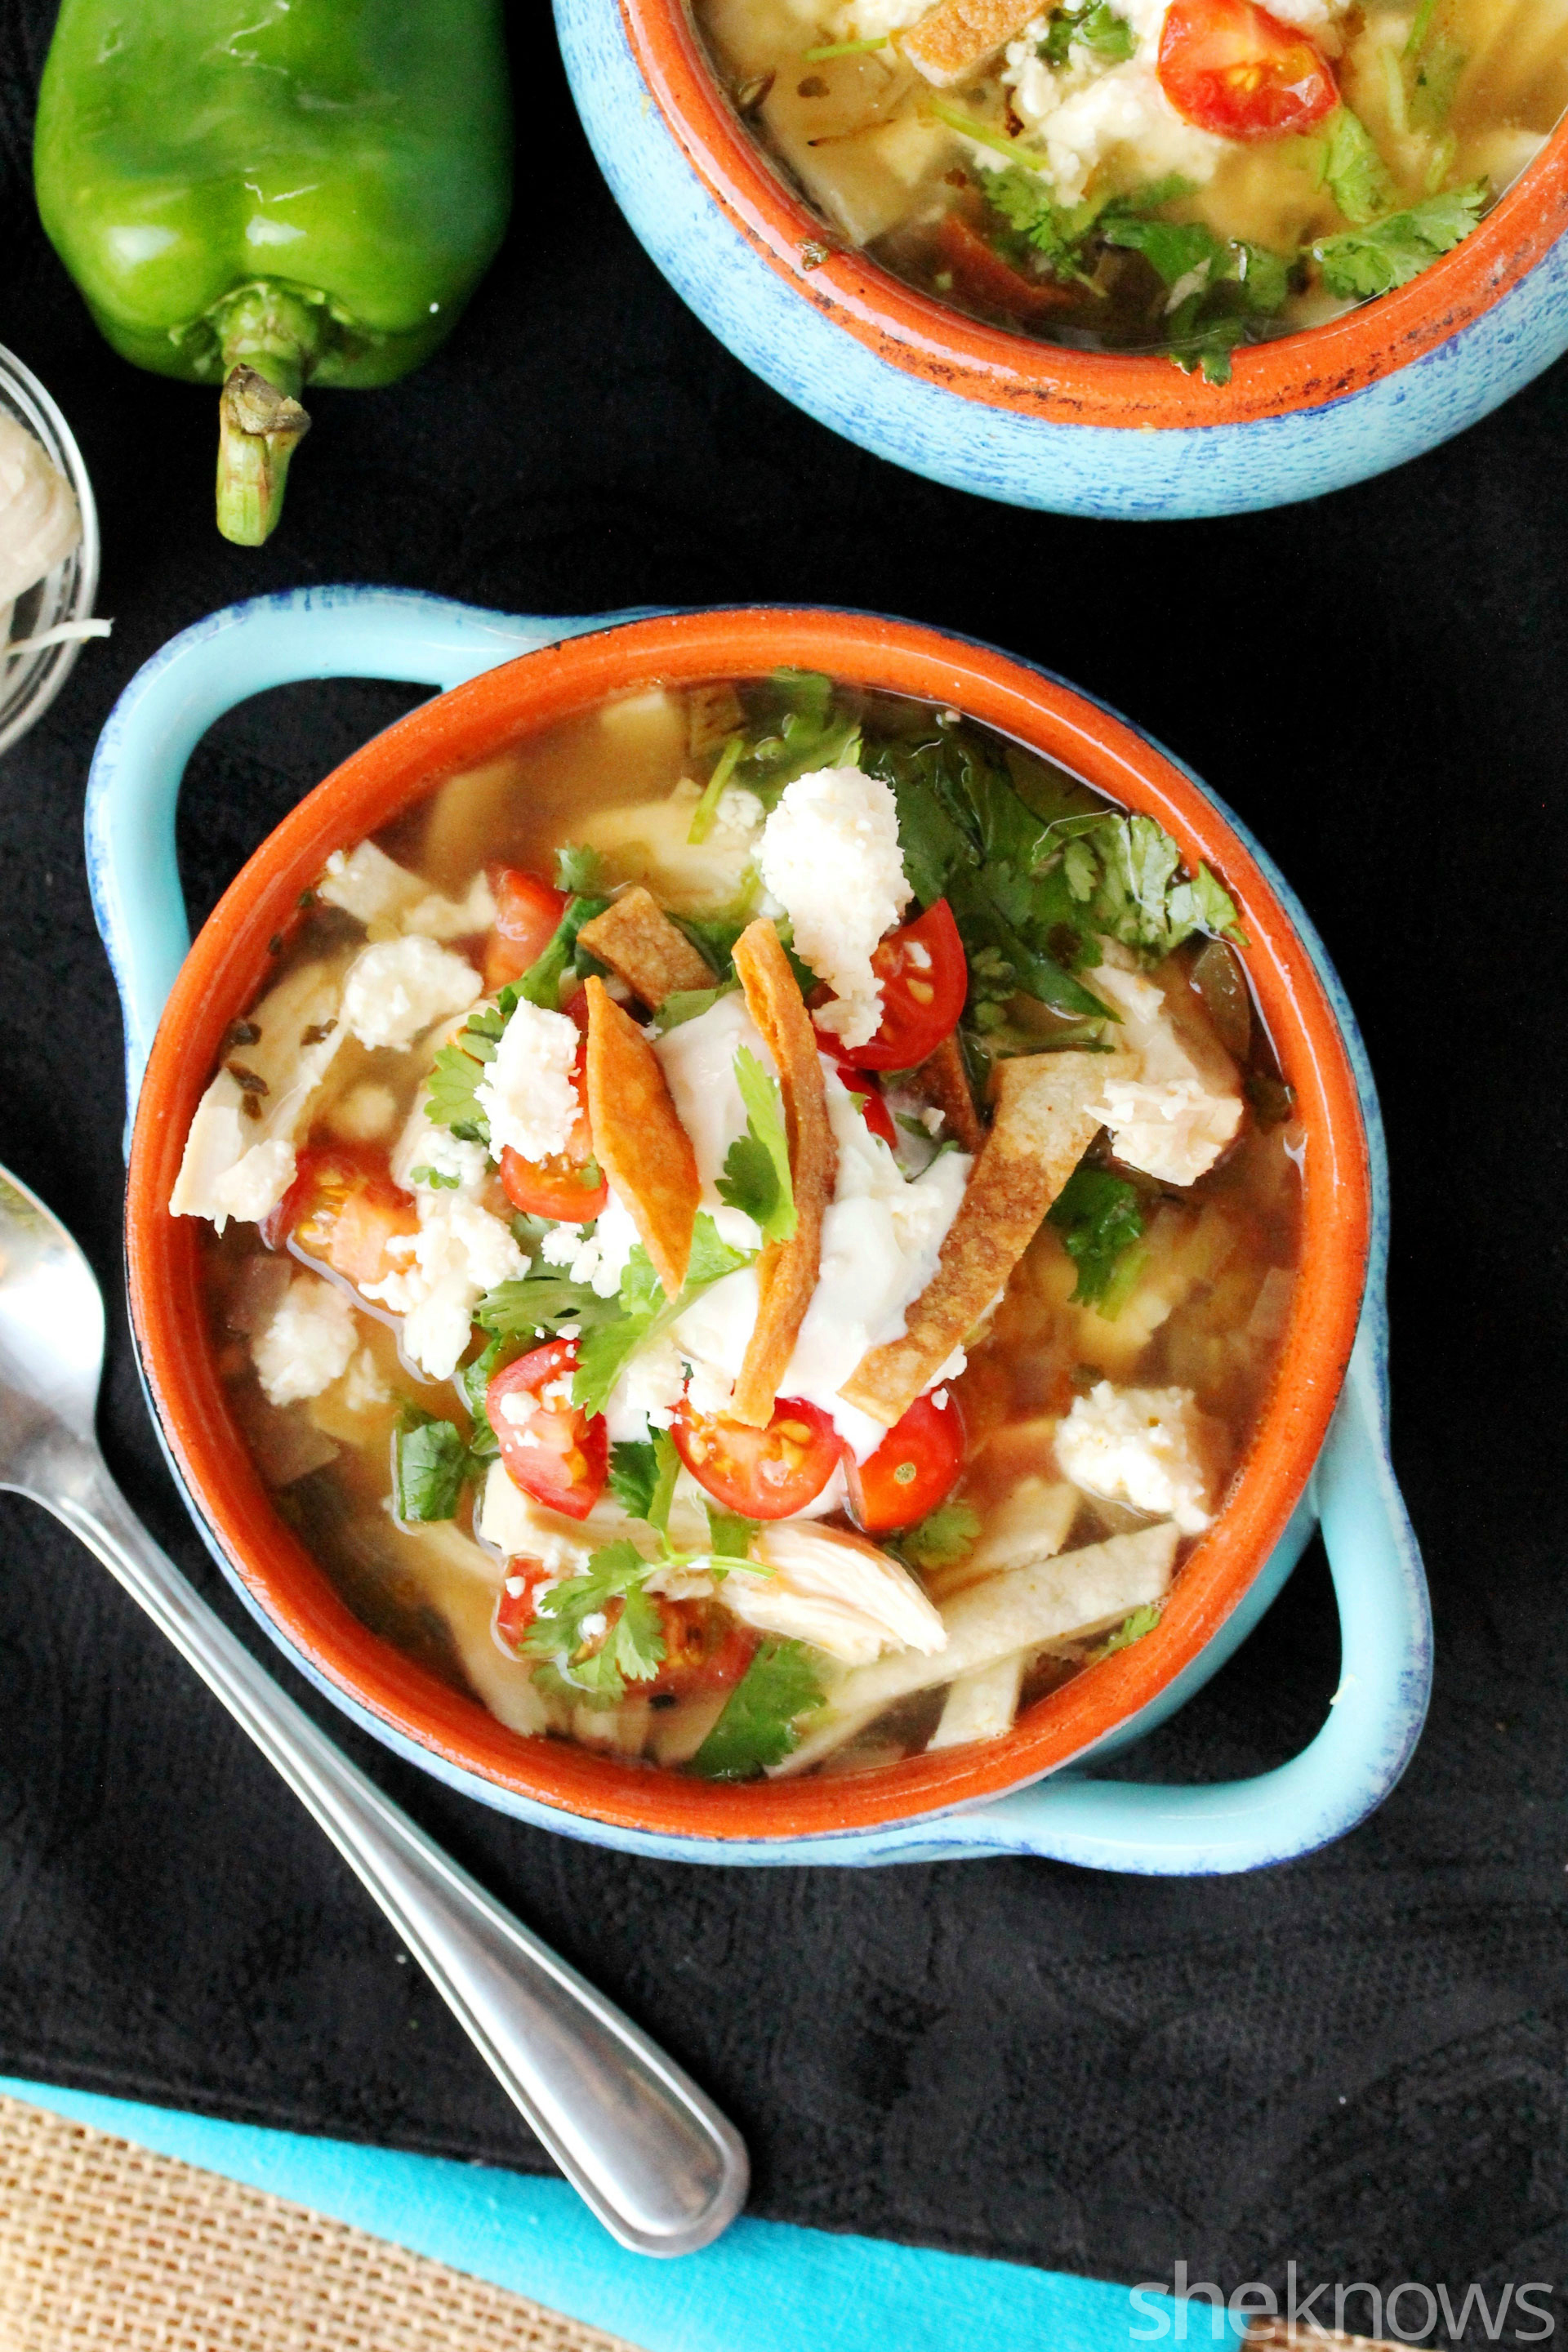 Slow cooker green chili and shredded chicken tortilla soup recipe